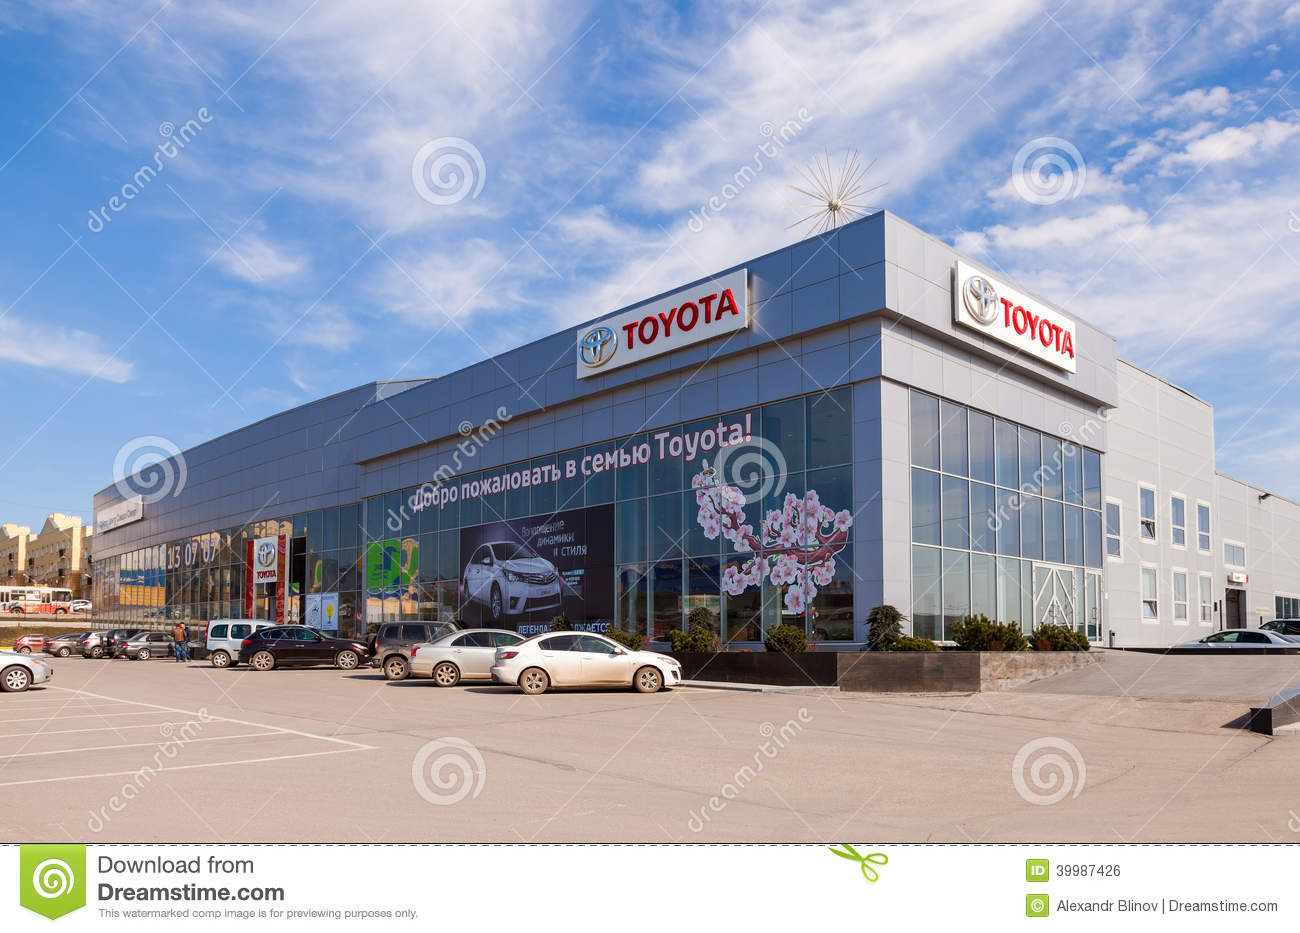 japanese a the of may dealer russia is video group motor toyota member key vladivostok corporation su circa automotive center largest